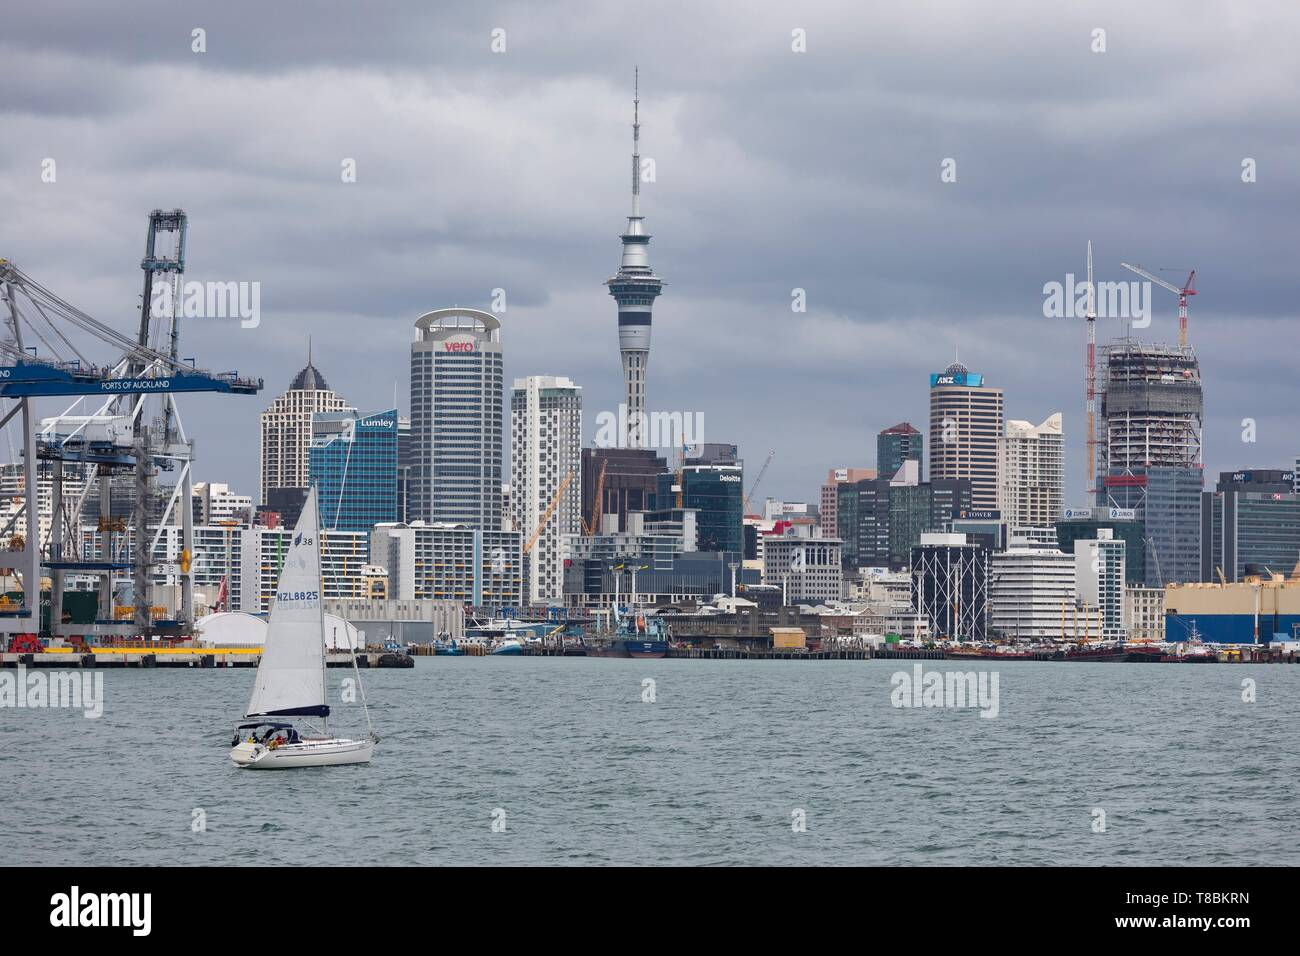 New Zealand, North Island, Auckland region, Auckland city - Stock Image